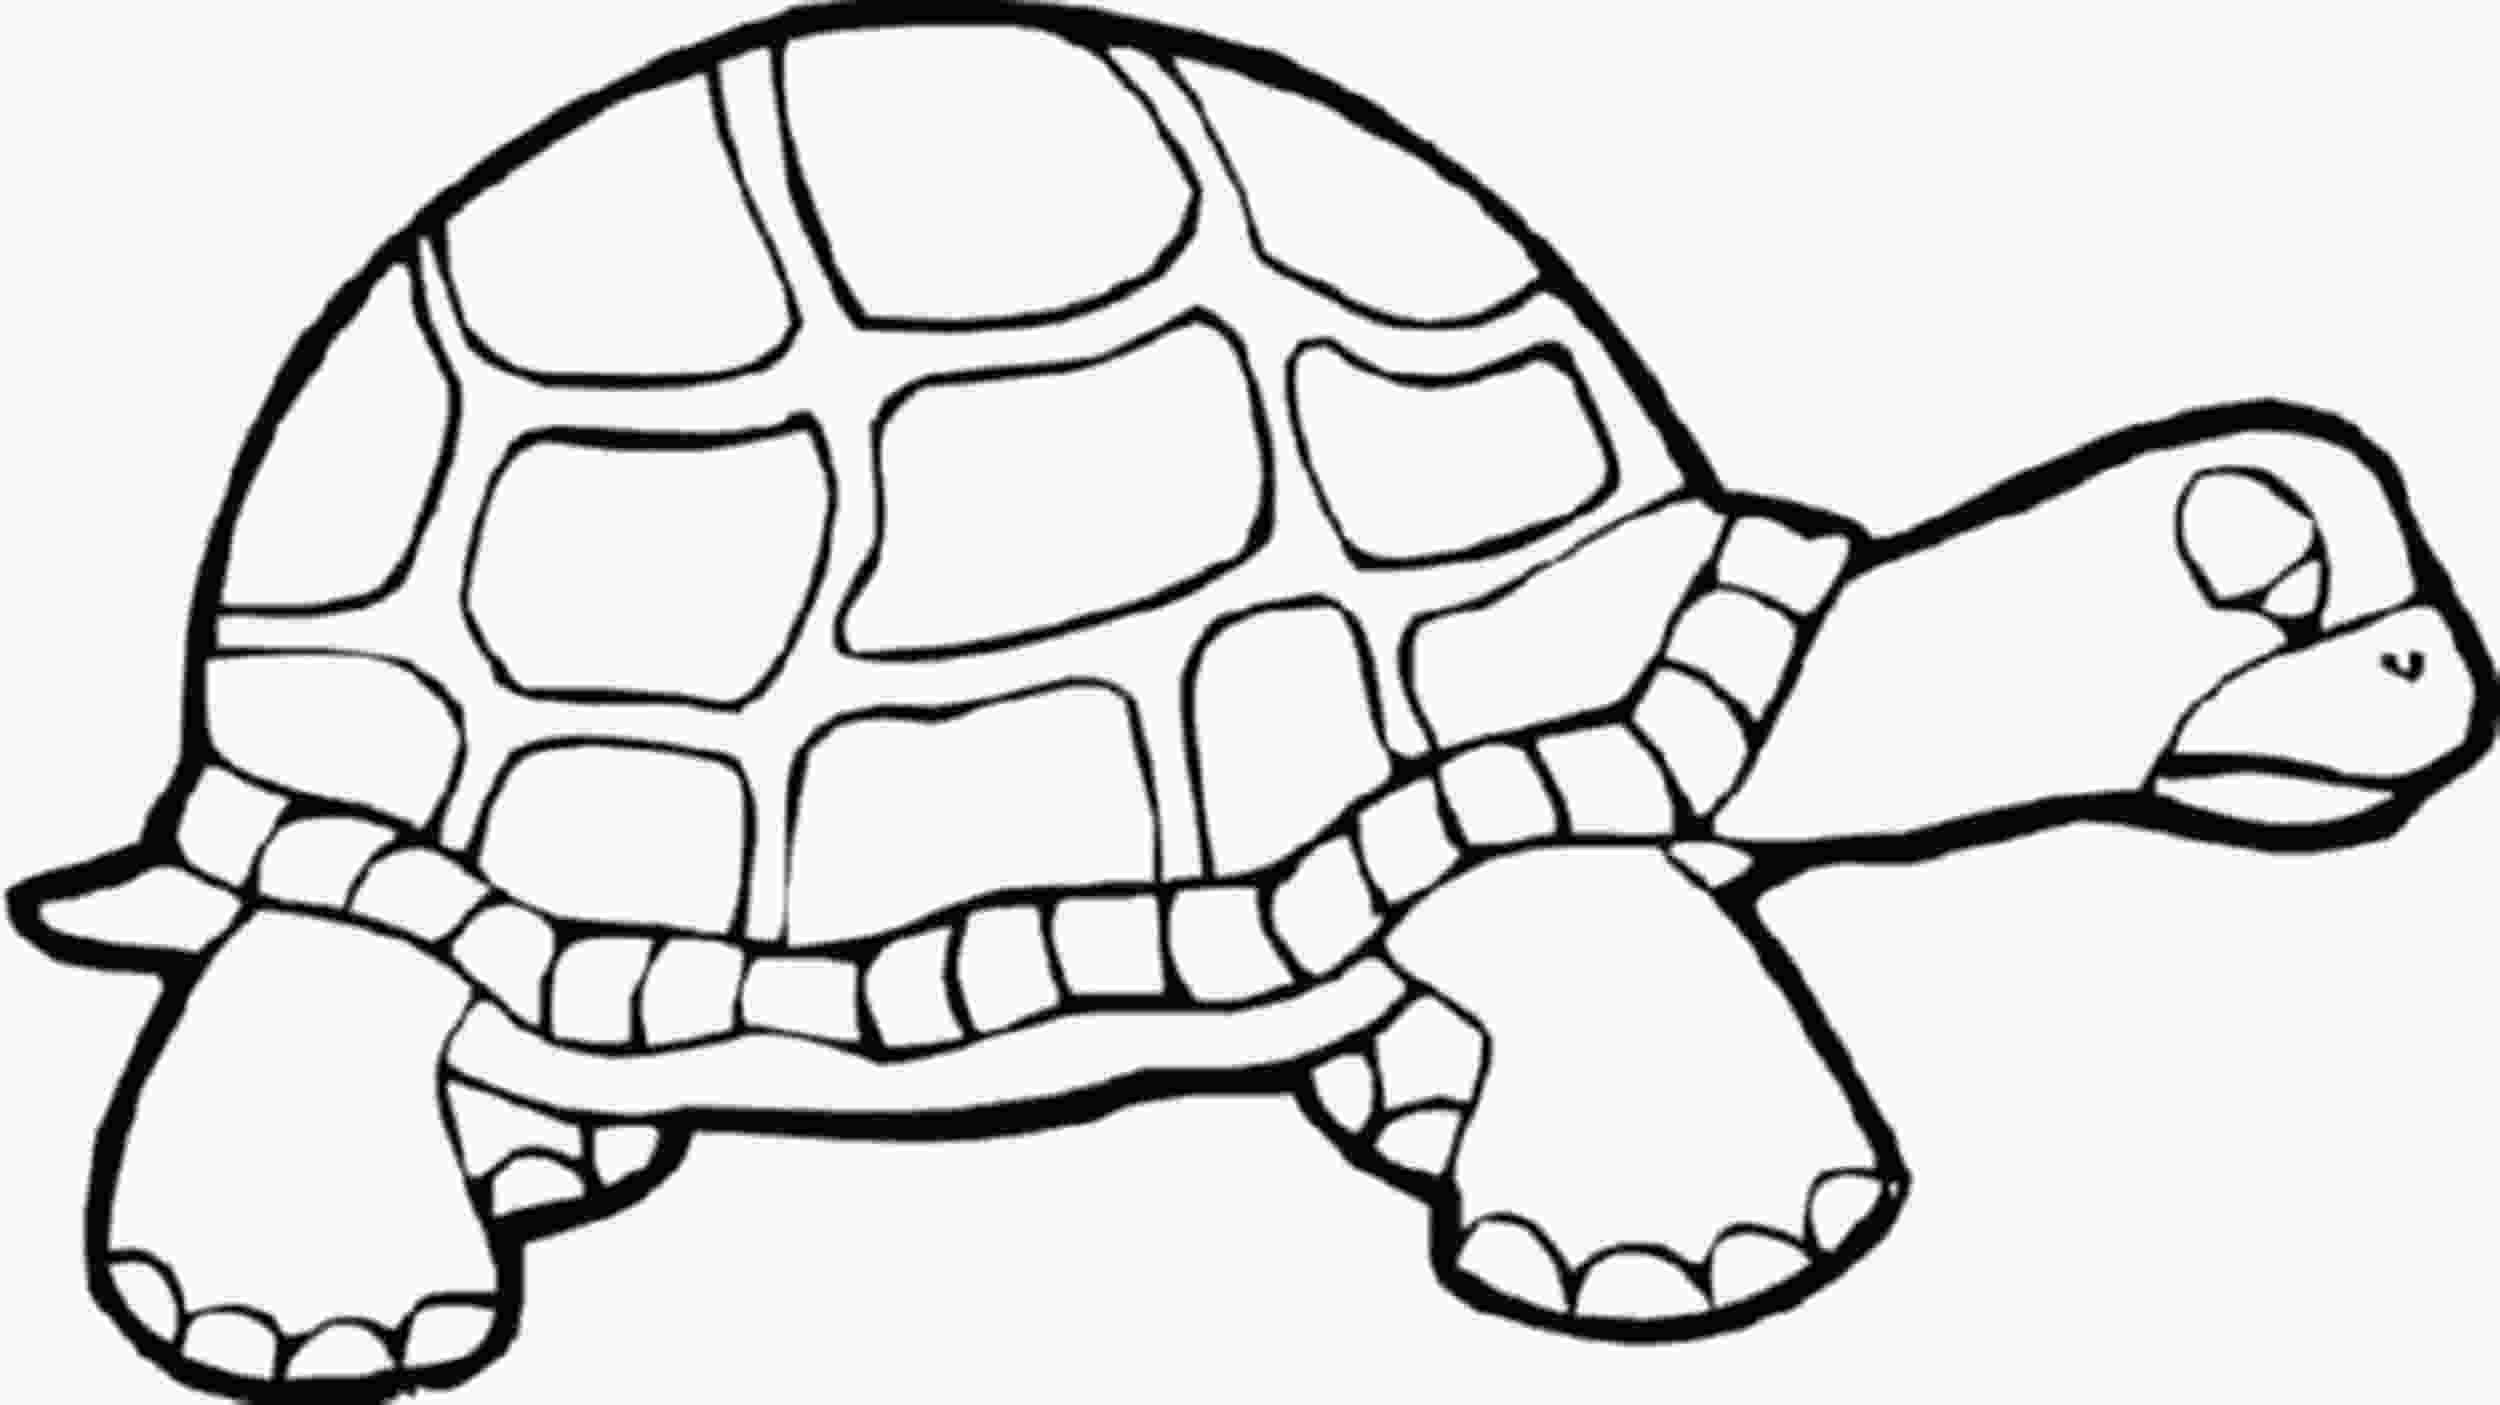 coloring page of turtle print amp download turtle coloring pages as the educational tool